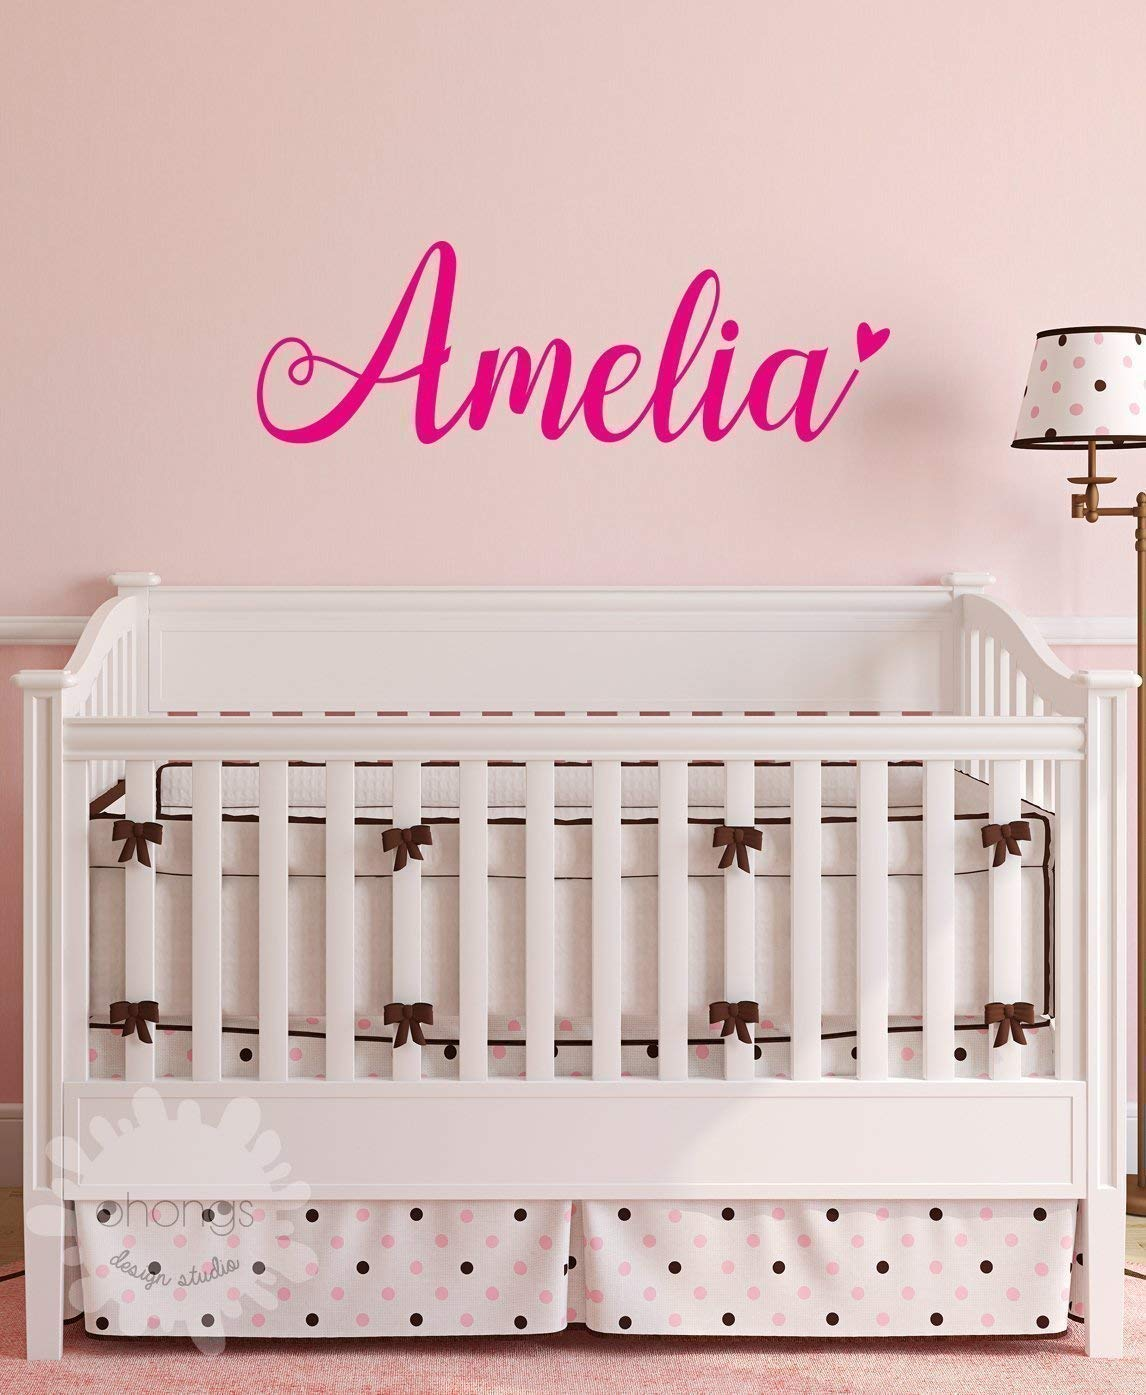 A Girls Name Decal/Custom name sticker/Personalized Wall Decal/Baby Name Decal/kids name sticker